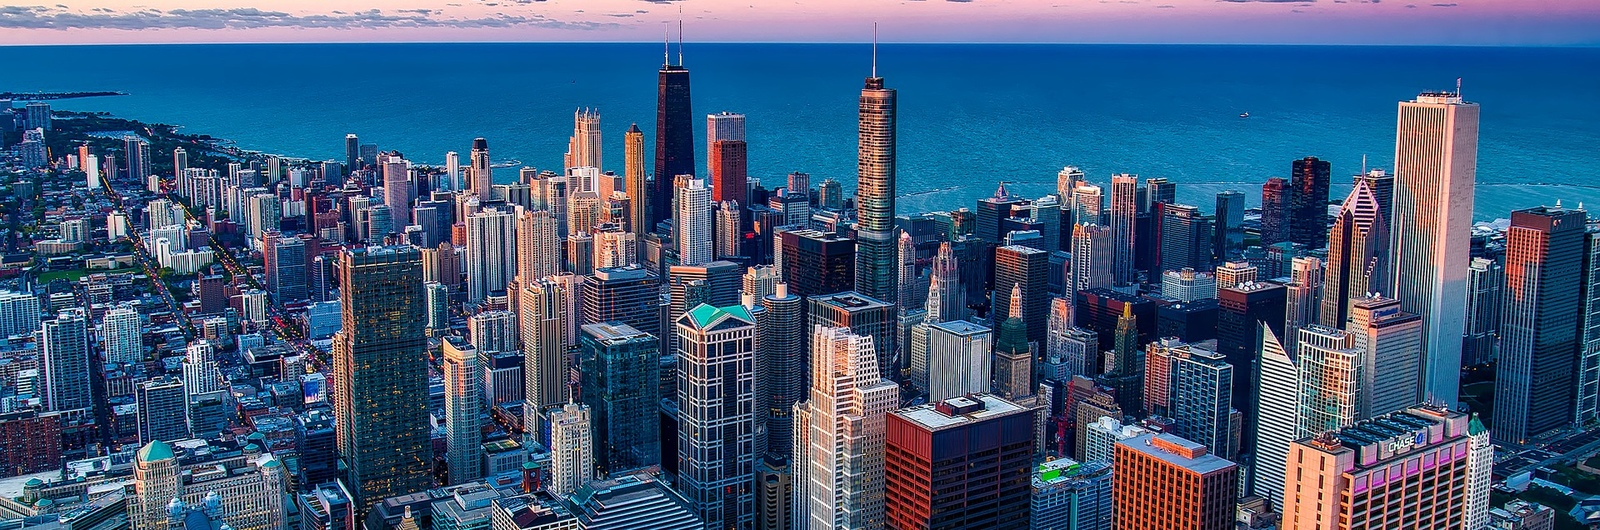 chicago city header